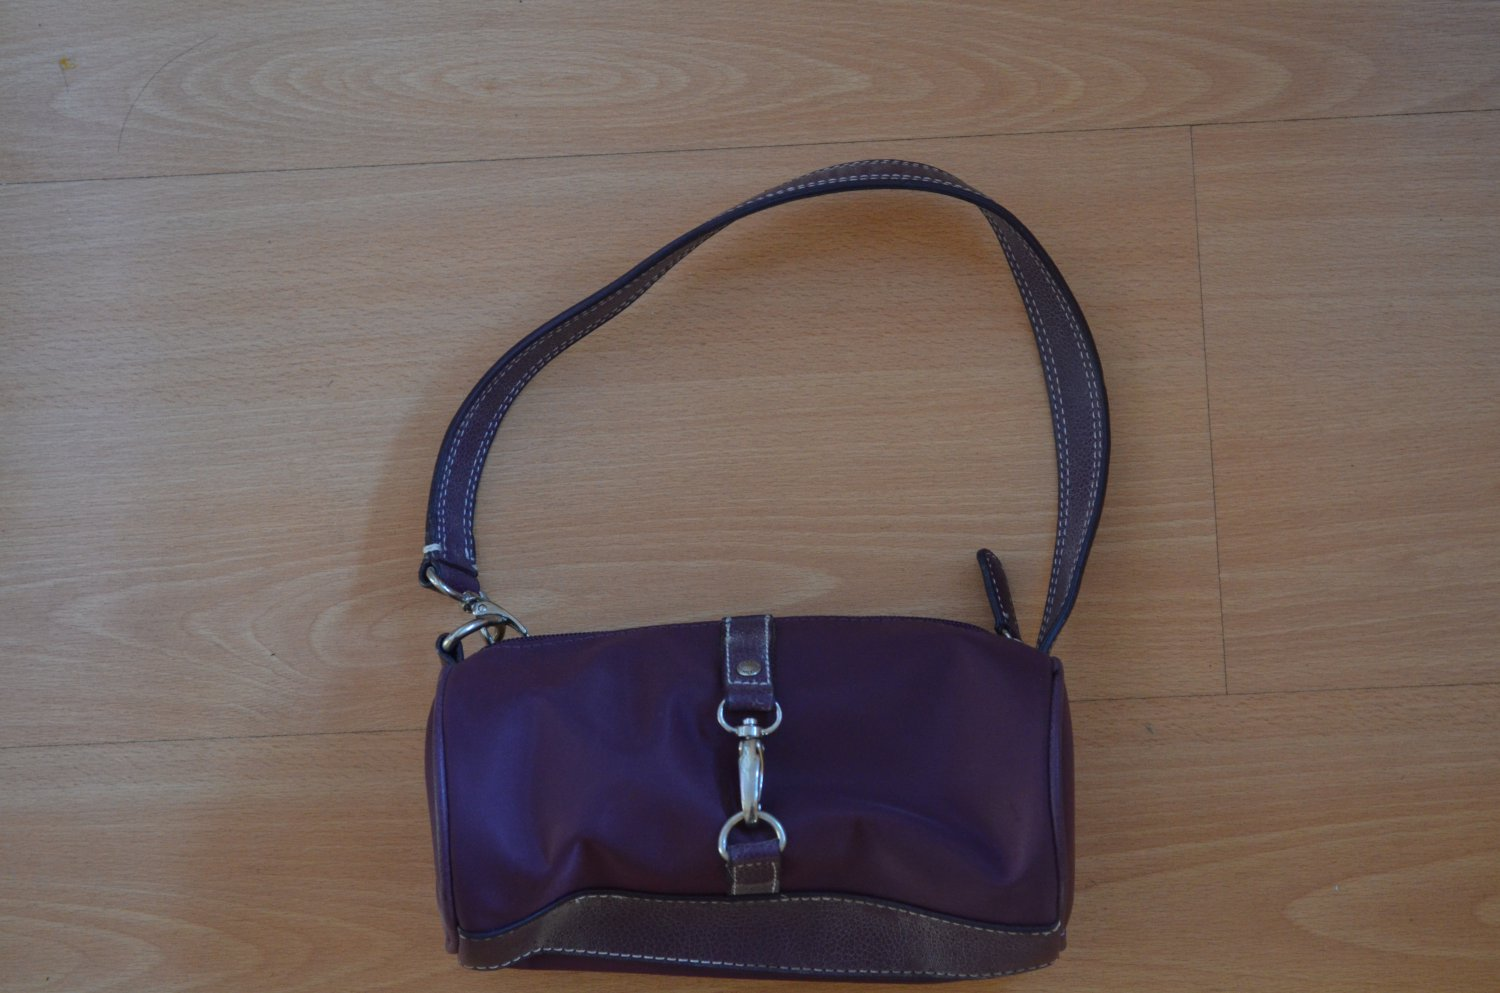 TOMMY HILFIGER Small Tote Bag Purple Burgundy Wine Cosmetic Case